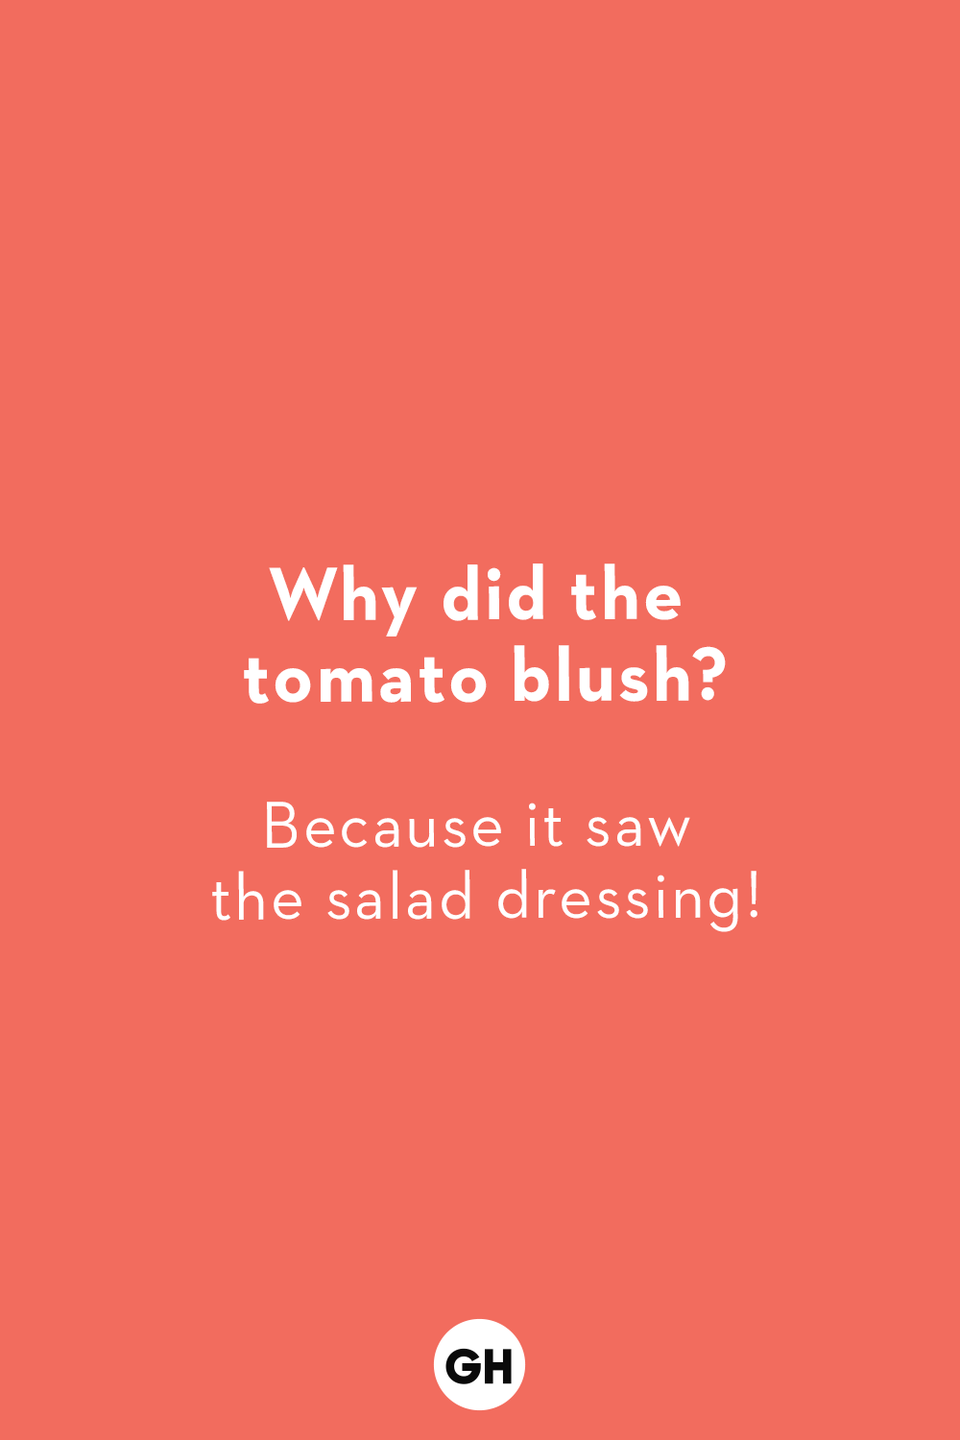 <p>Because it saw the salad dressing!</p>